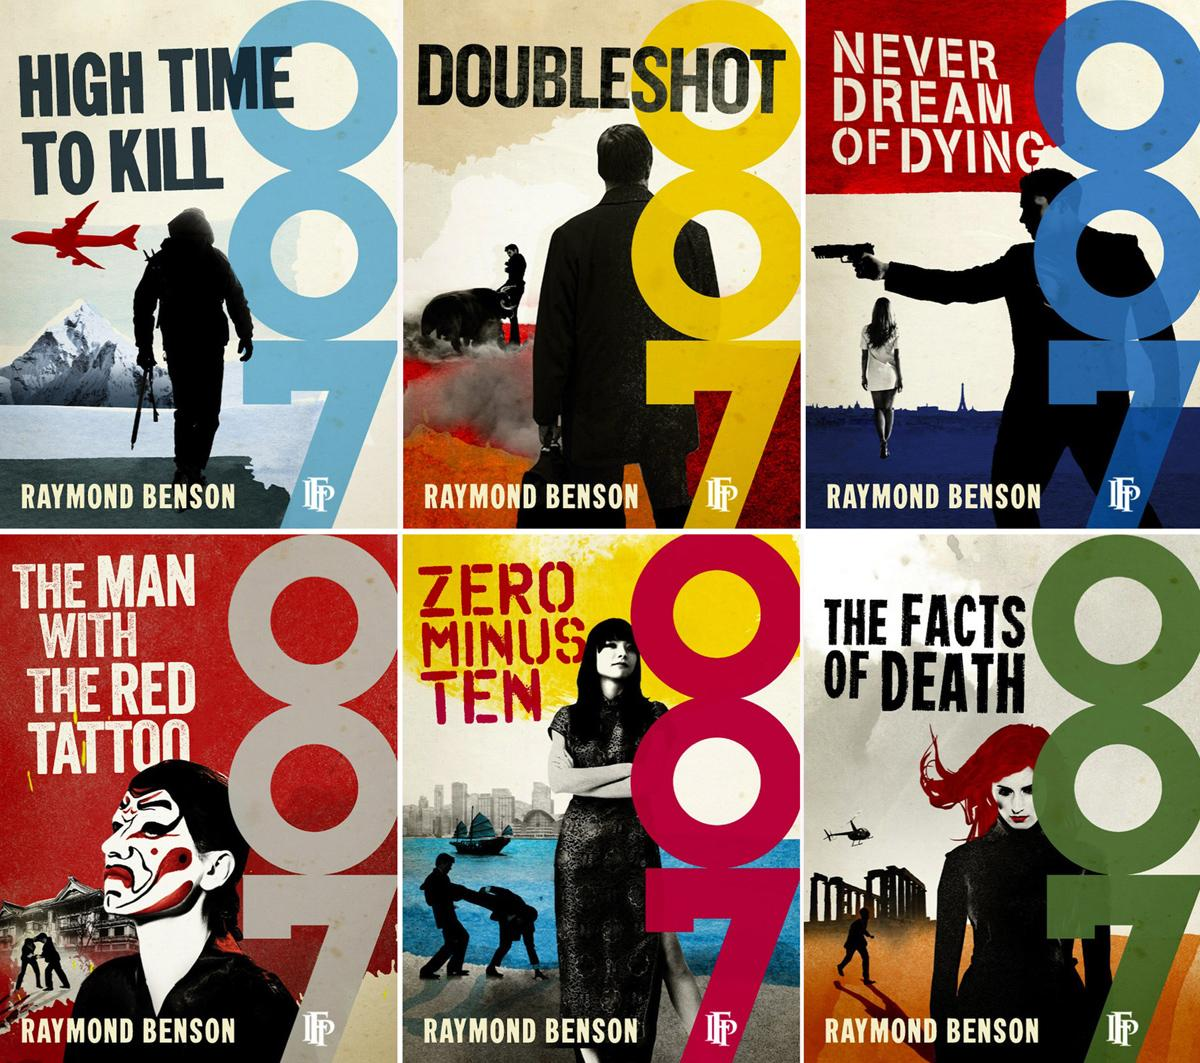 cover+artwork+raymond+benson+james+bond+007+e+books.jpg (1200×1063)